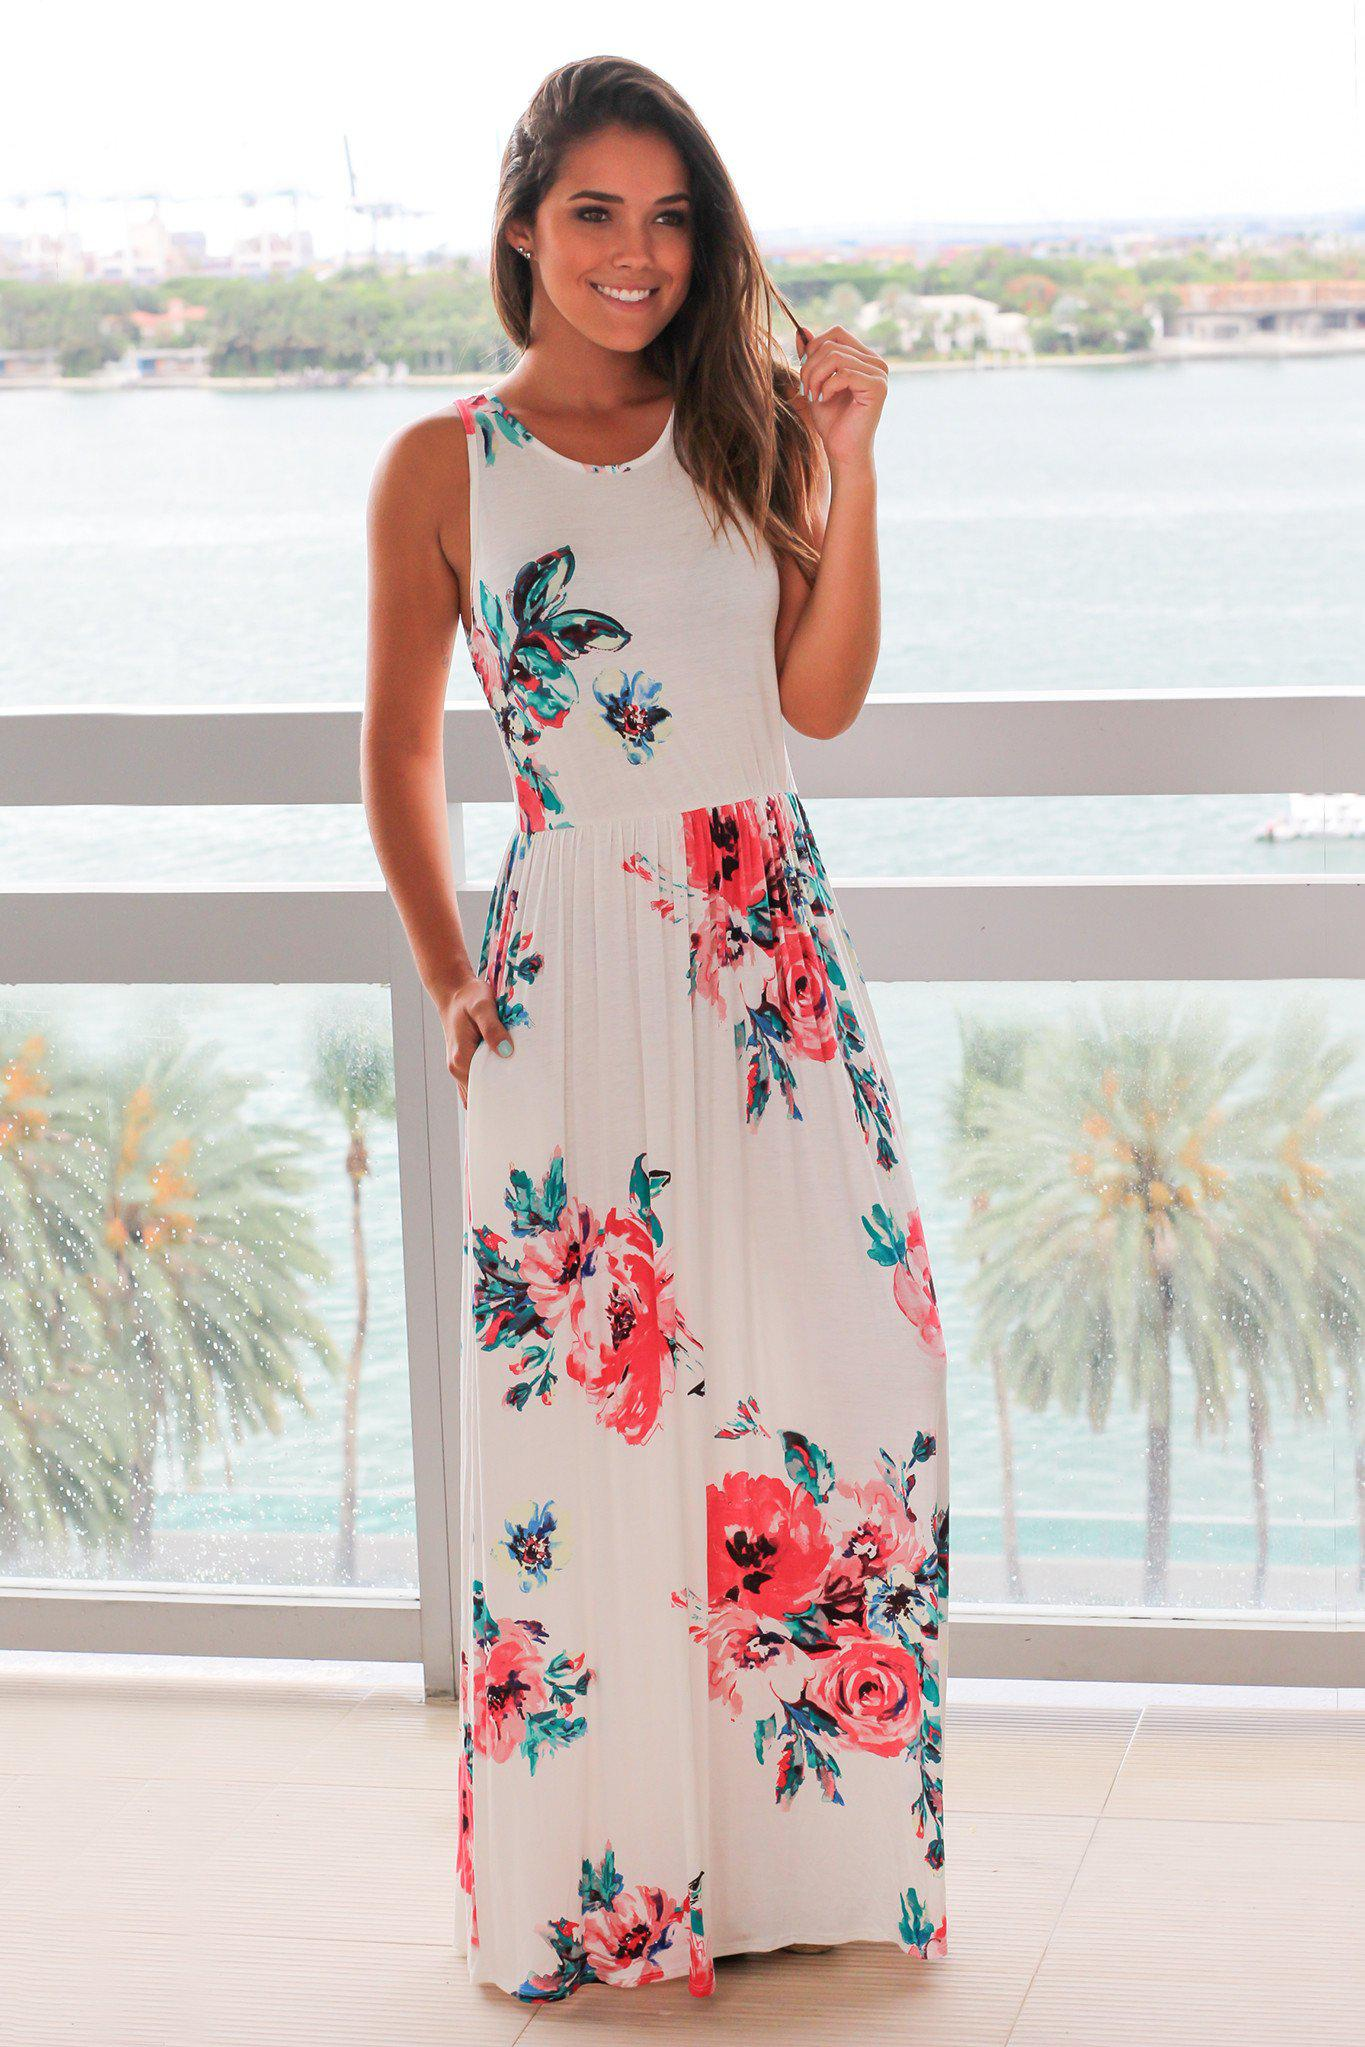 aff7635561c23 Ivory and Pink Floral Sleeveless Maxi Dress | Online Boutiques ...